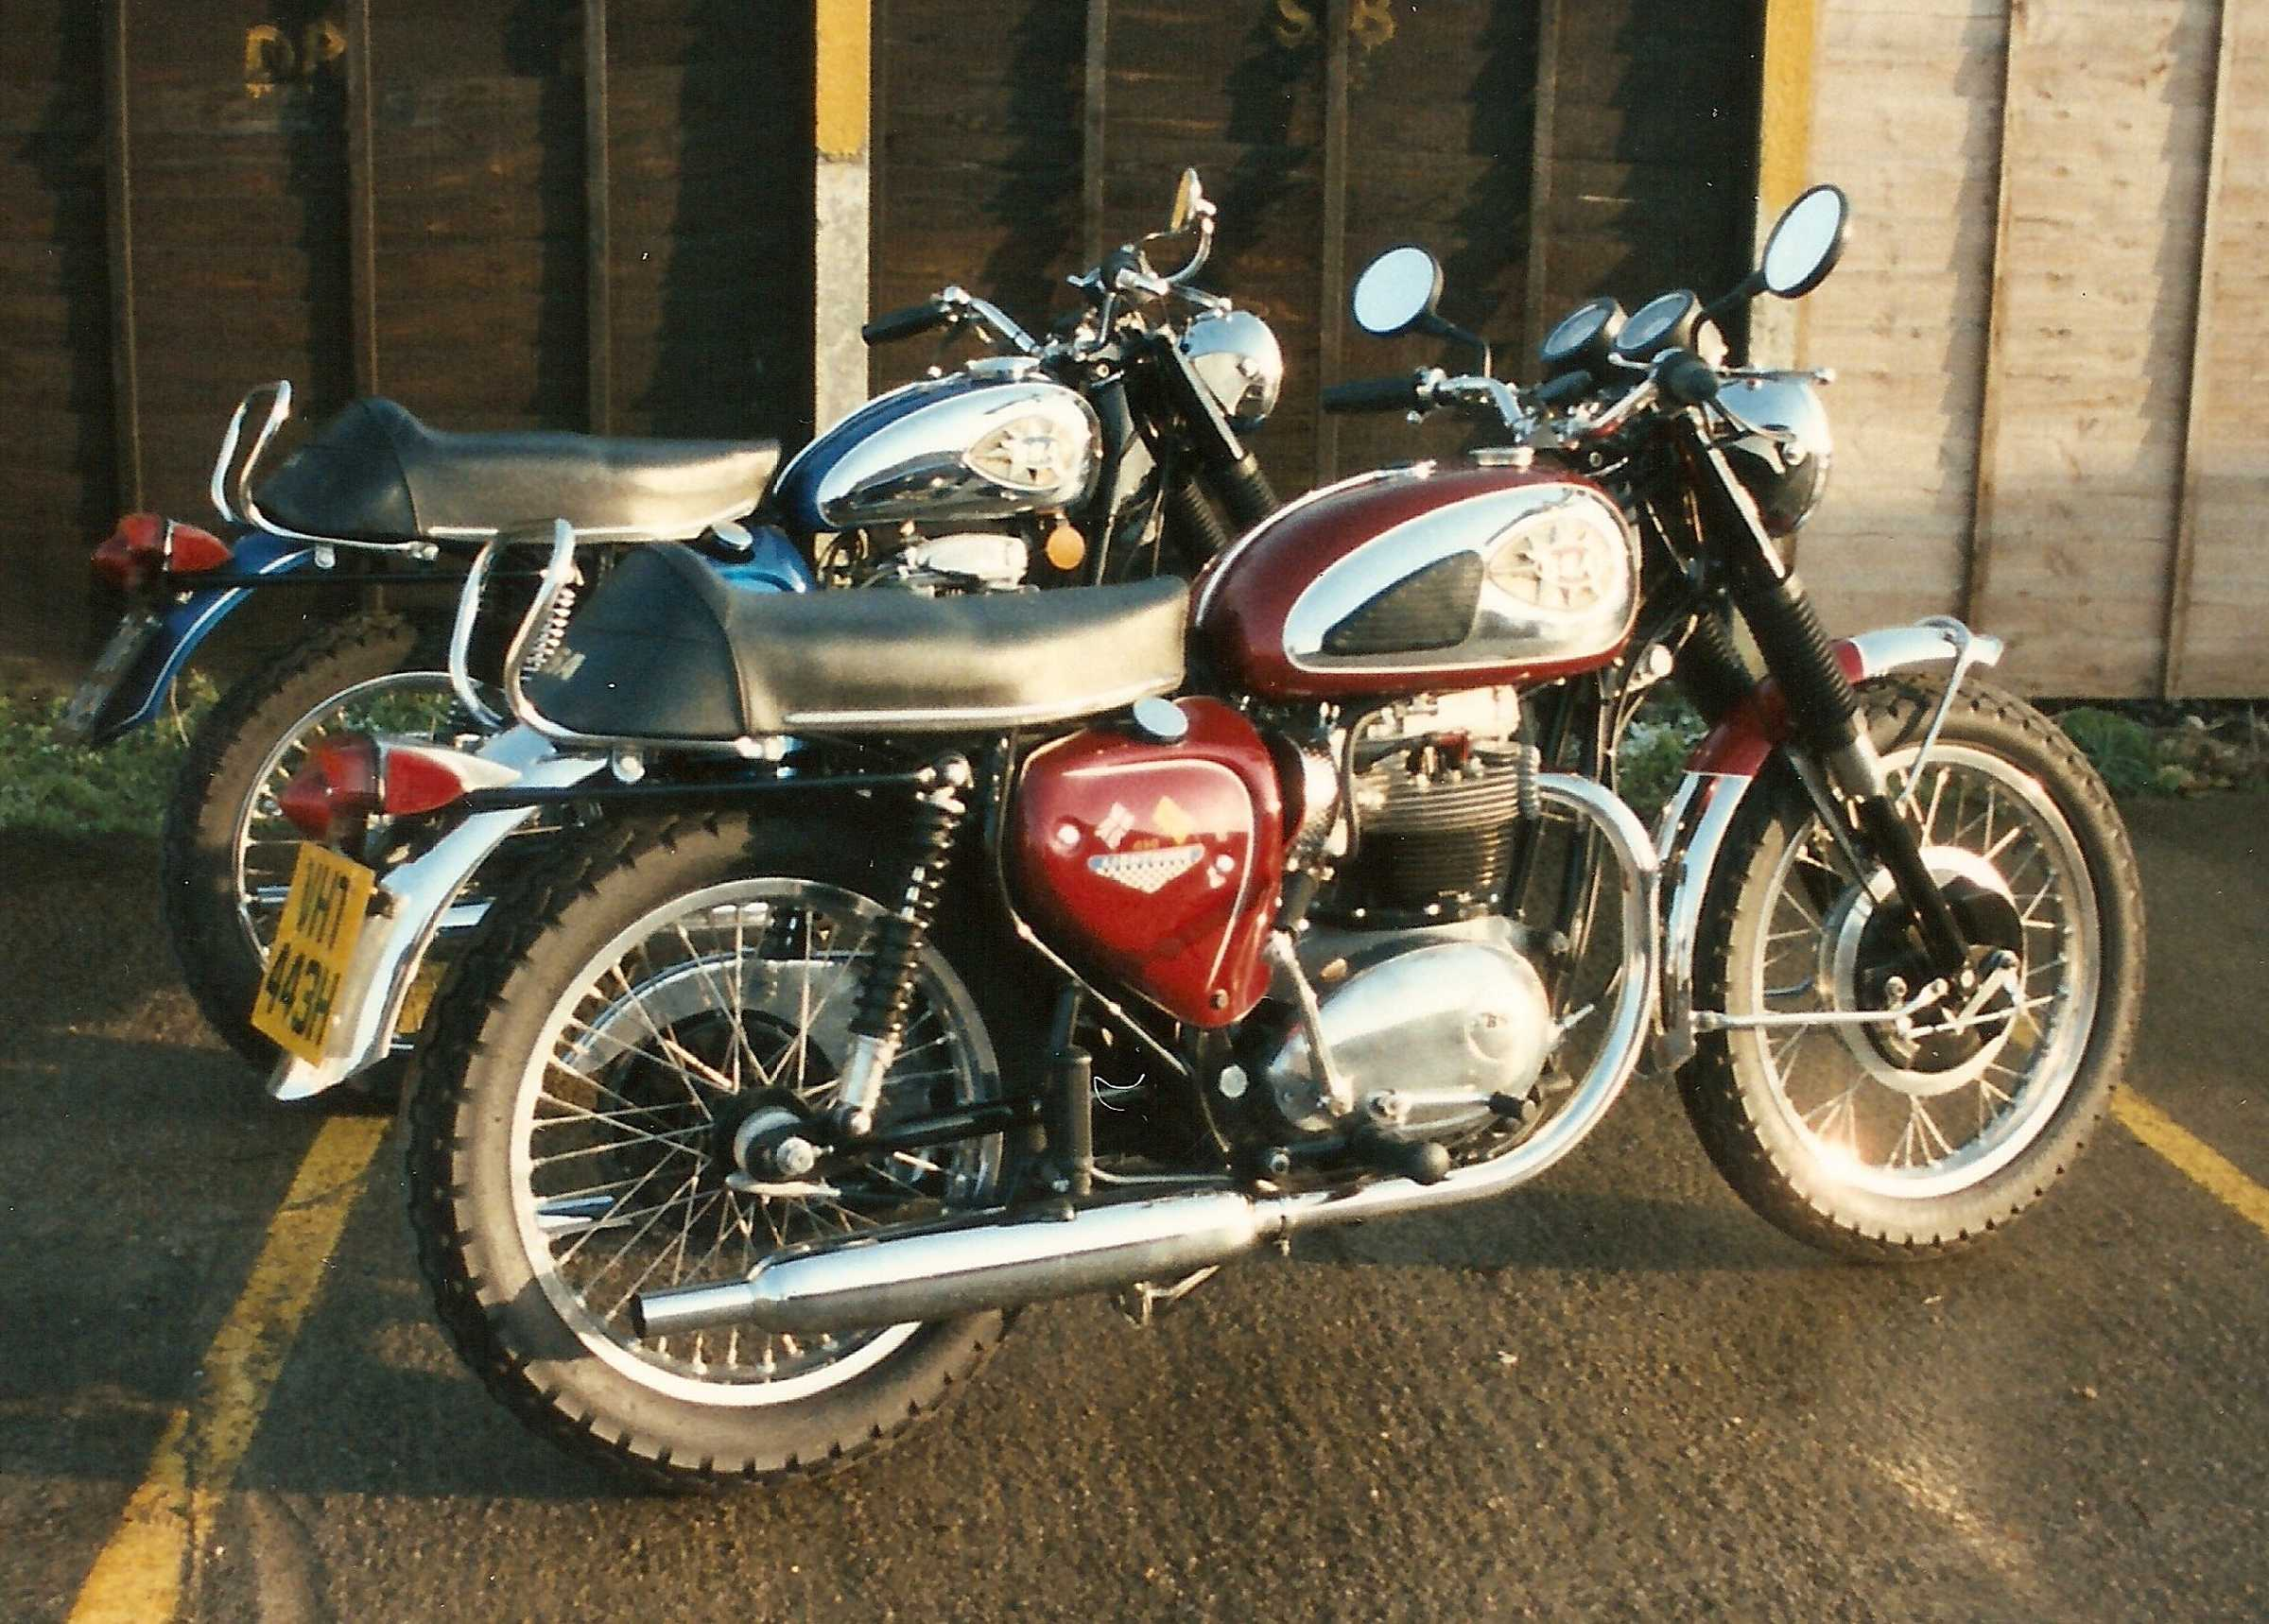 A 1970 Lightning I restored and owned for a while together with a 500cc Royal Star of the same vintage